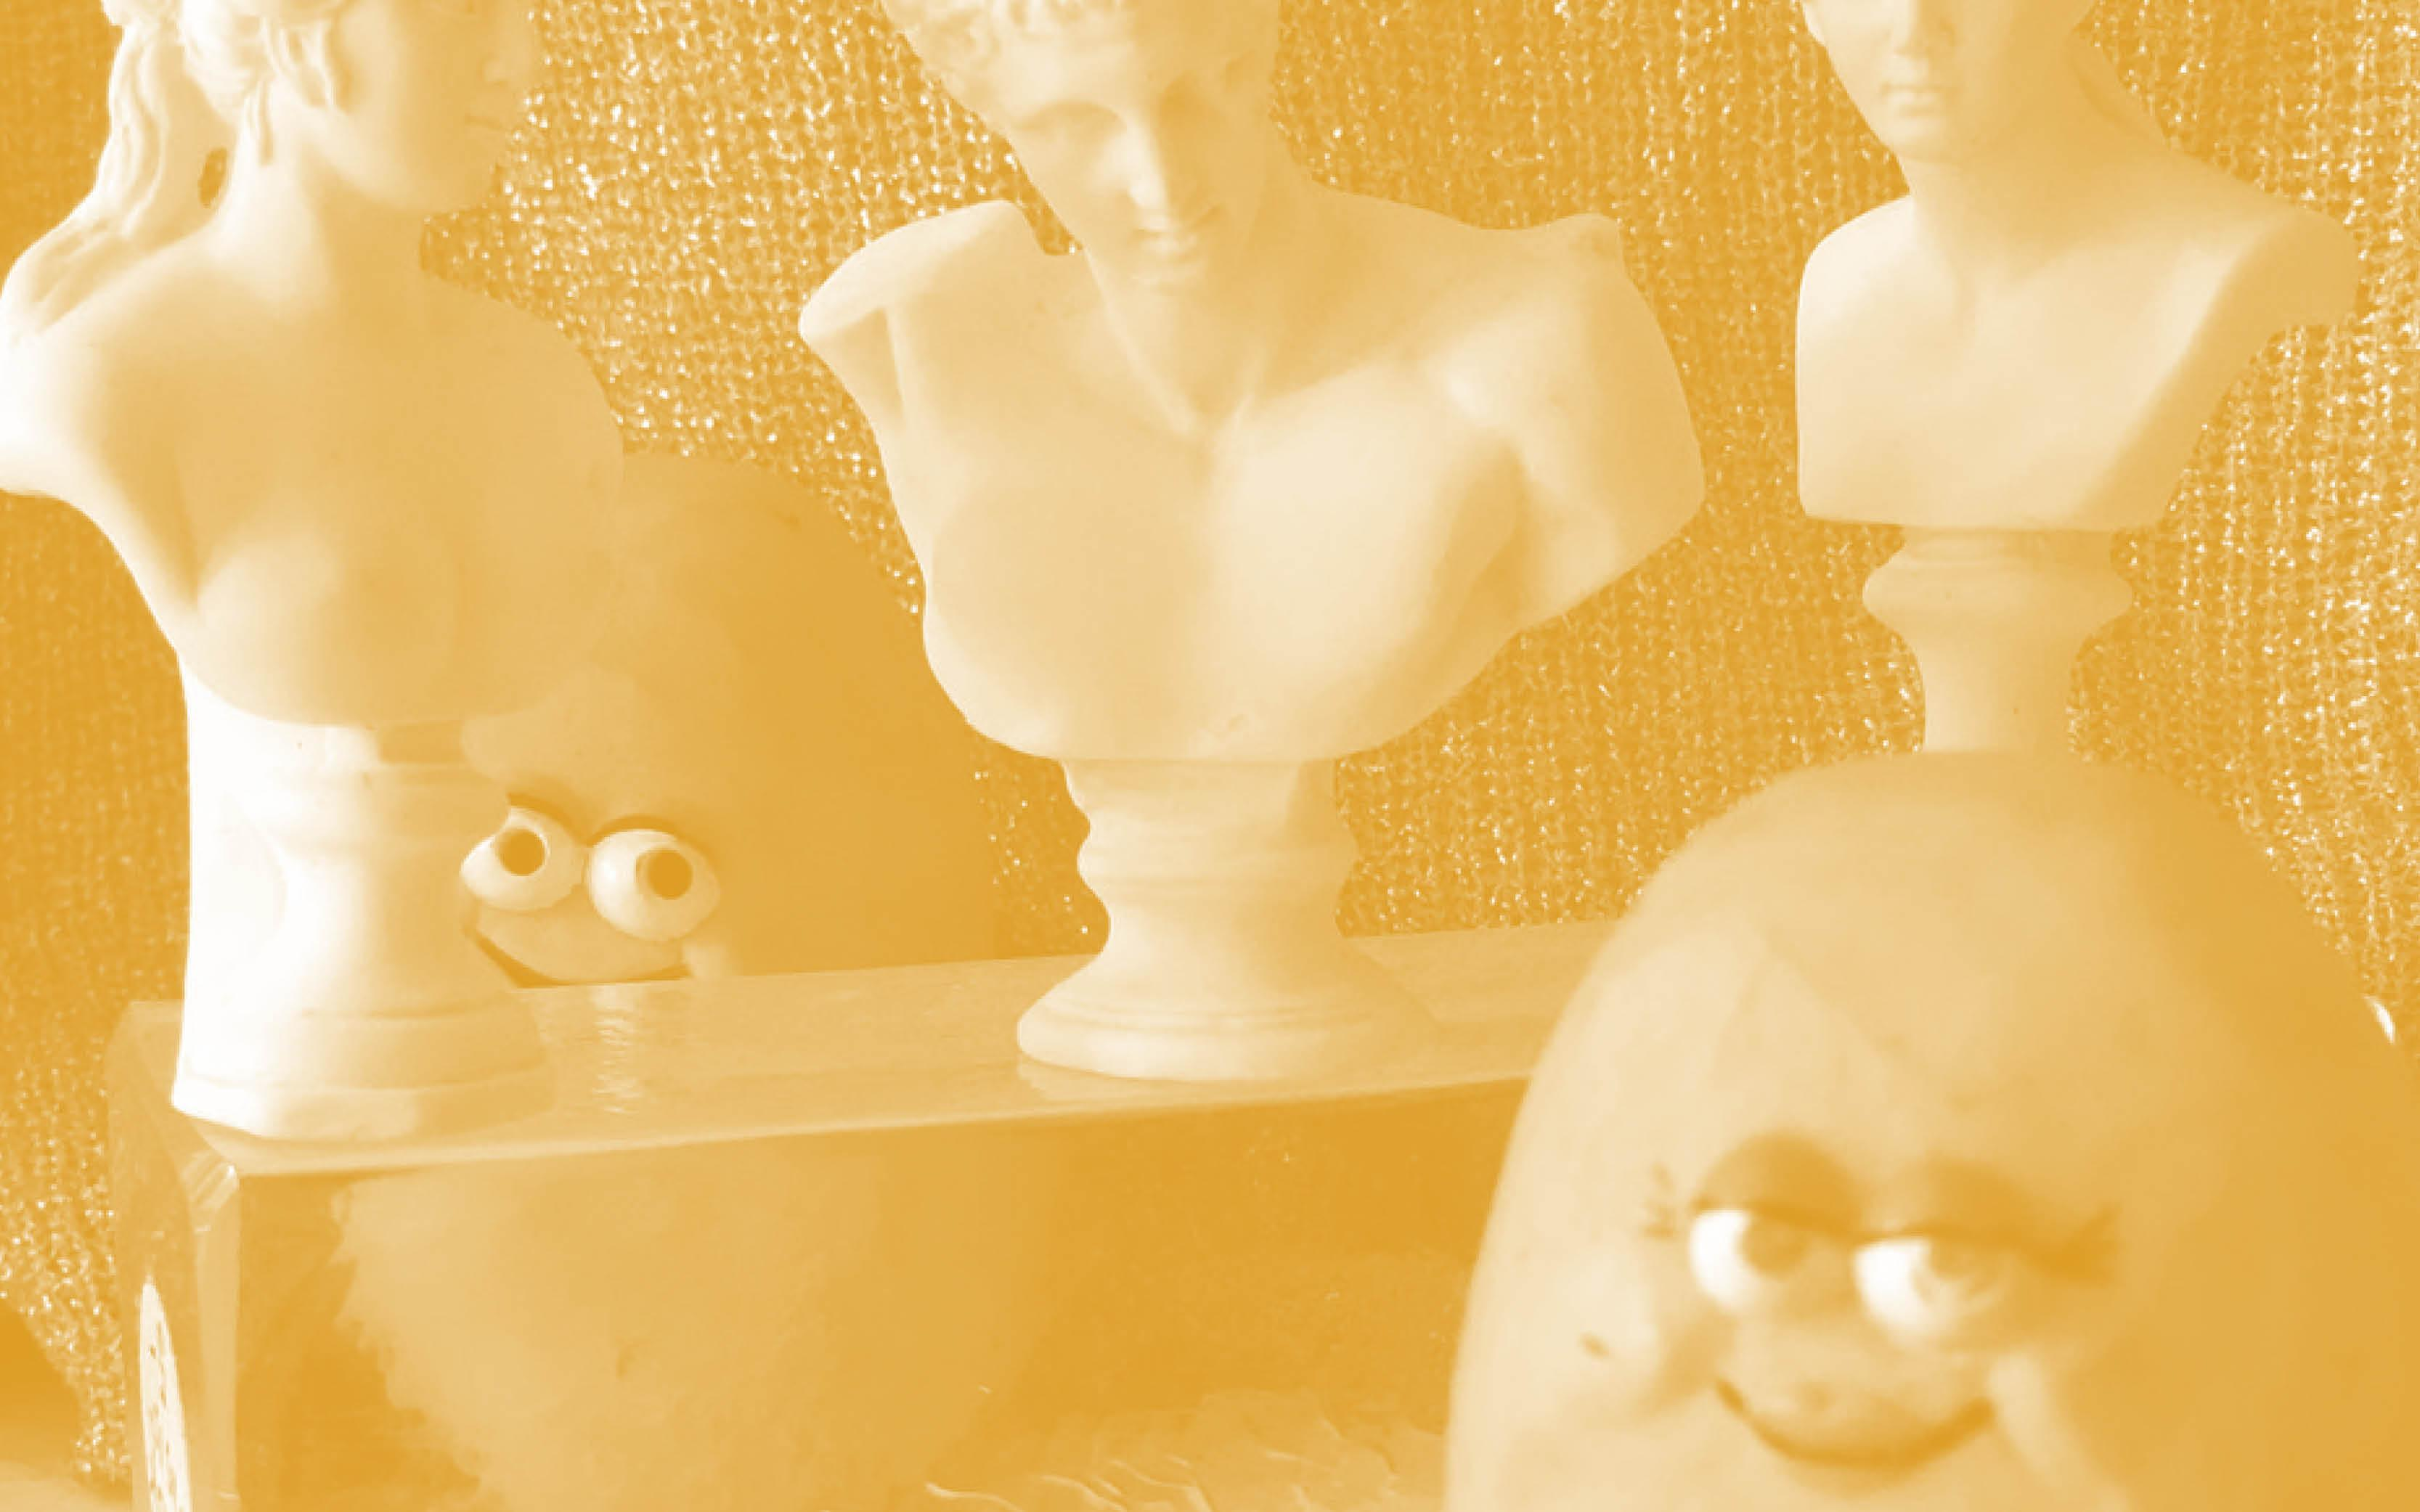 A yellow-tinged scene features three sculptural busts resting upright on a transparent pedestal. Two smiling McDonald's chicken nugget characters face forward in front of a shimmery backdrop.